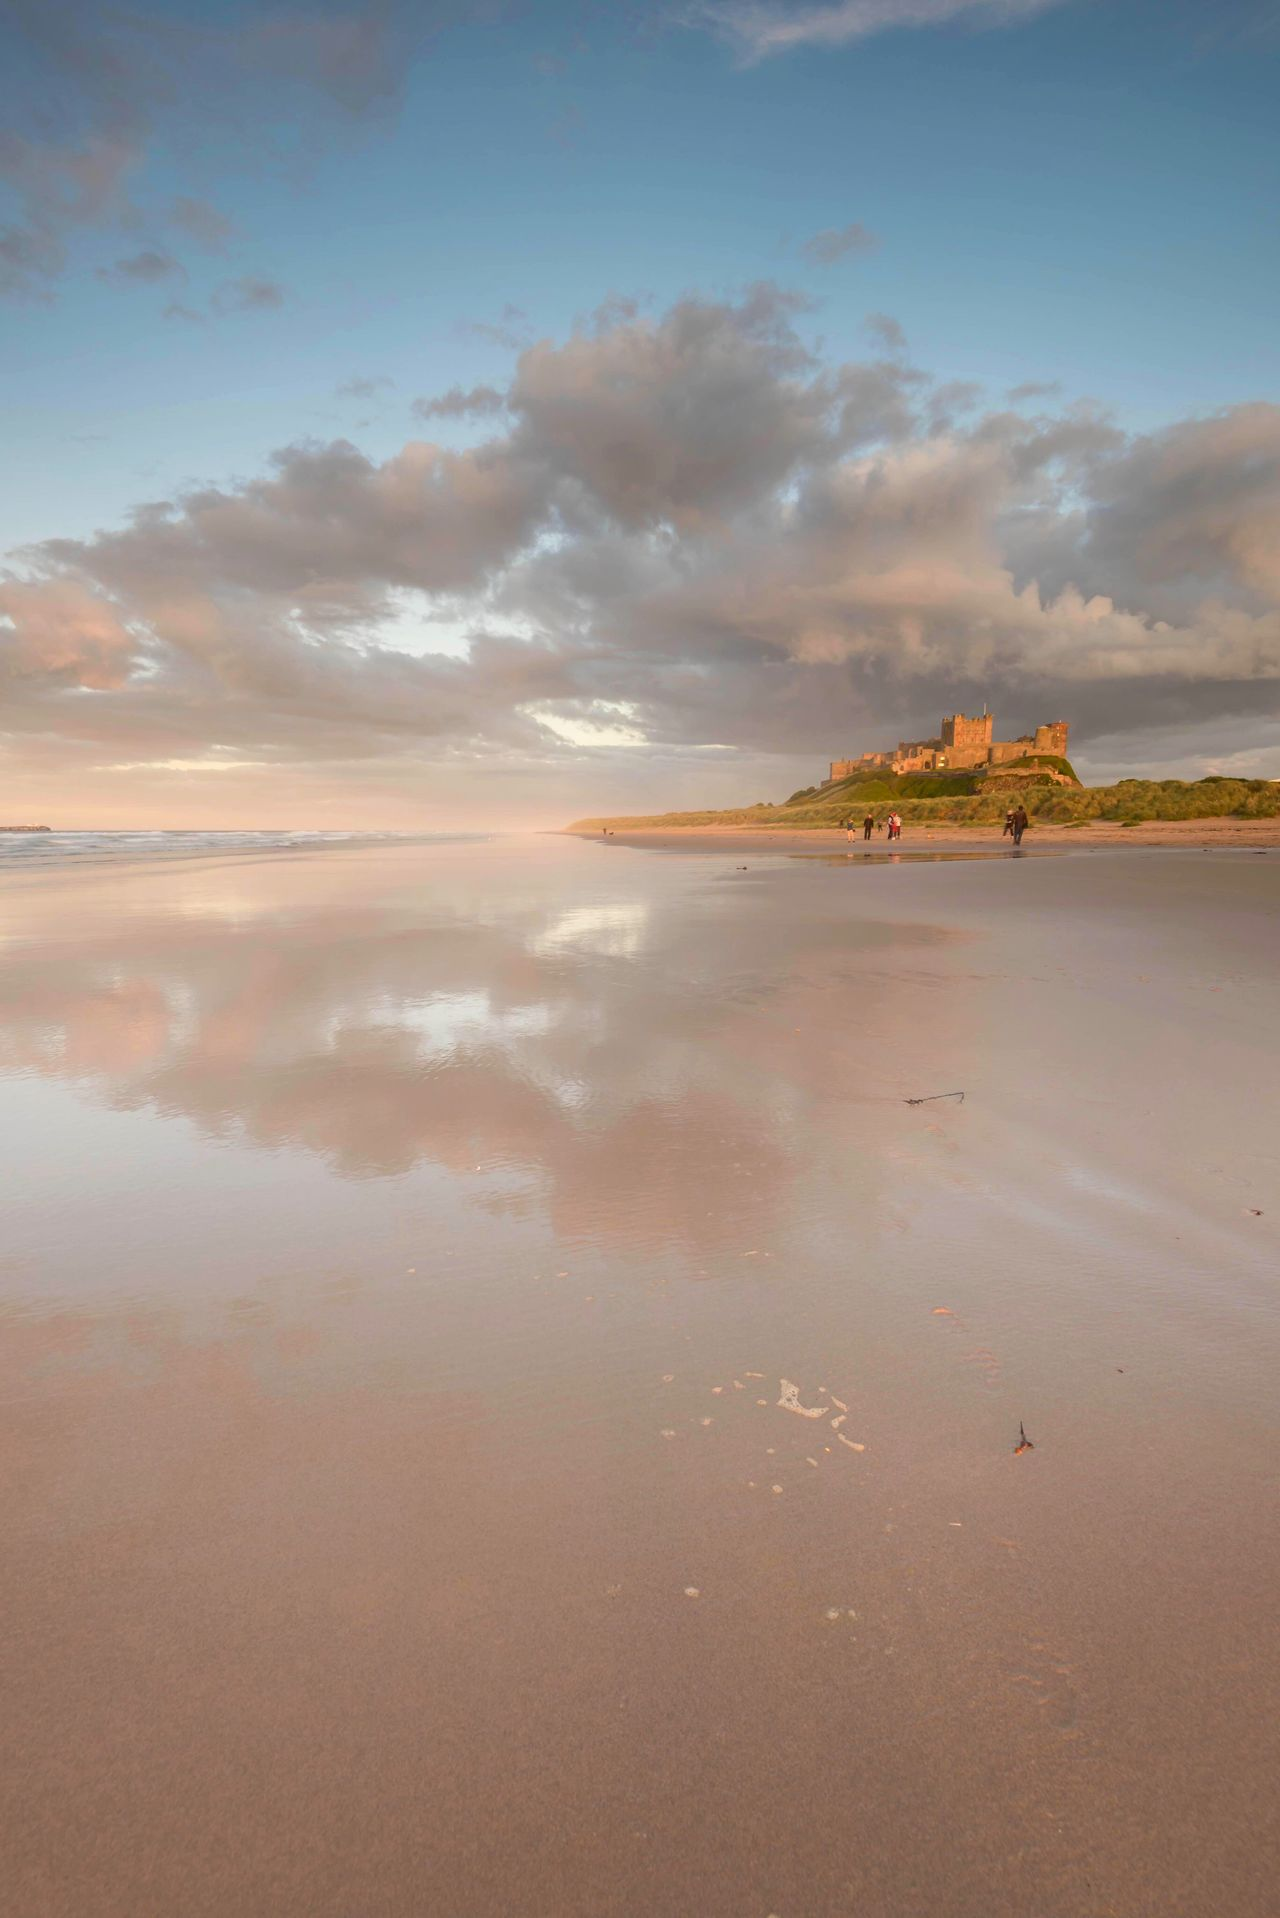 Sand Castle Scenics Beach Northumberland Bamburgh Castle Beachphotography Clouds And Sky Reflection The Great Outdoors - 2017 EyeEm Awards Beauty In Nature Tranquil Scene Beach Walk Sunset Outdoors Scenery Love Nature Enjoying The View Landscape Travel Destinations Nature Beach Life Seaside Coastline Tranquility Cloudporn